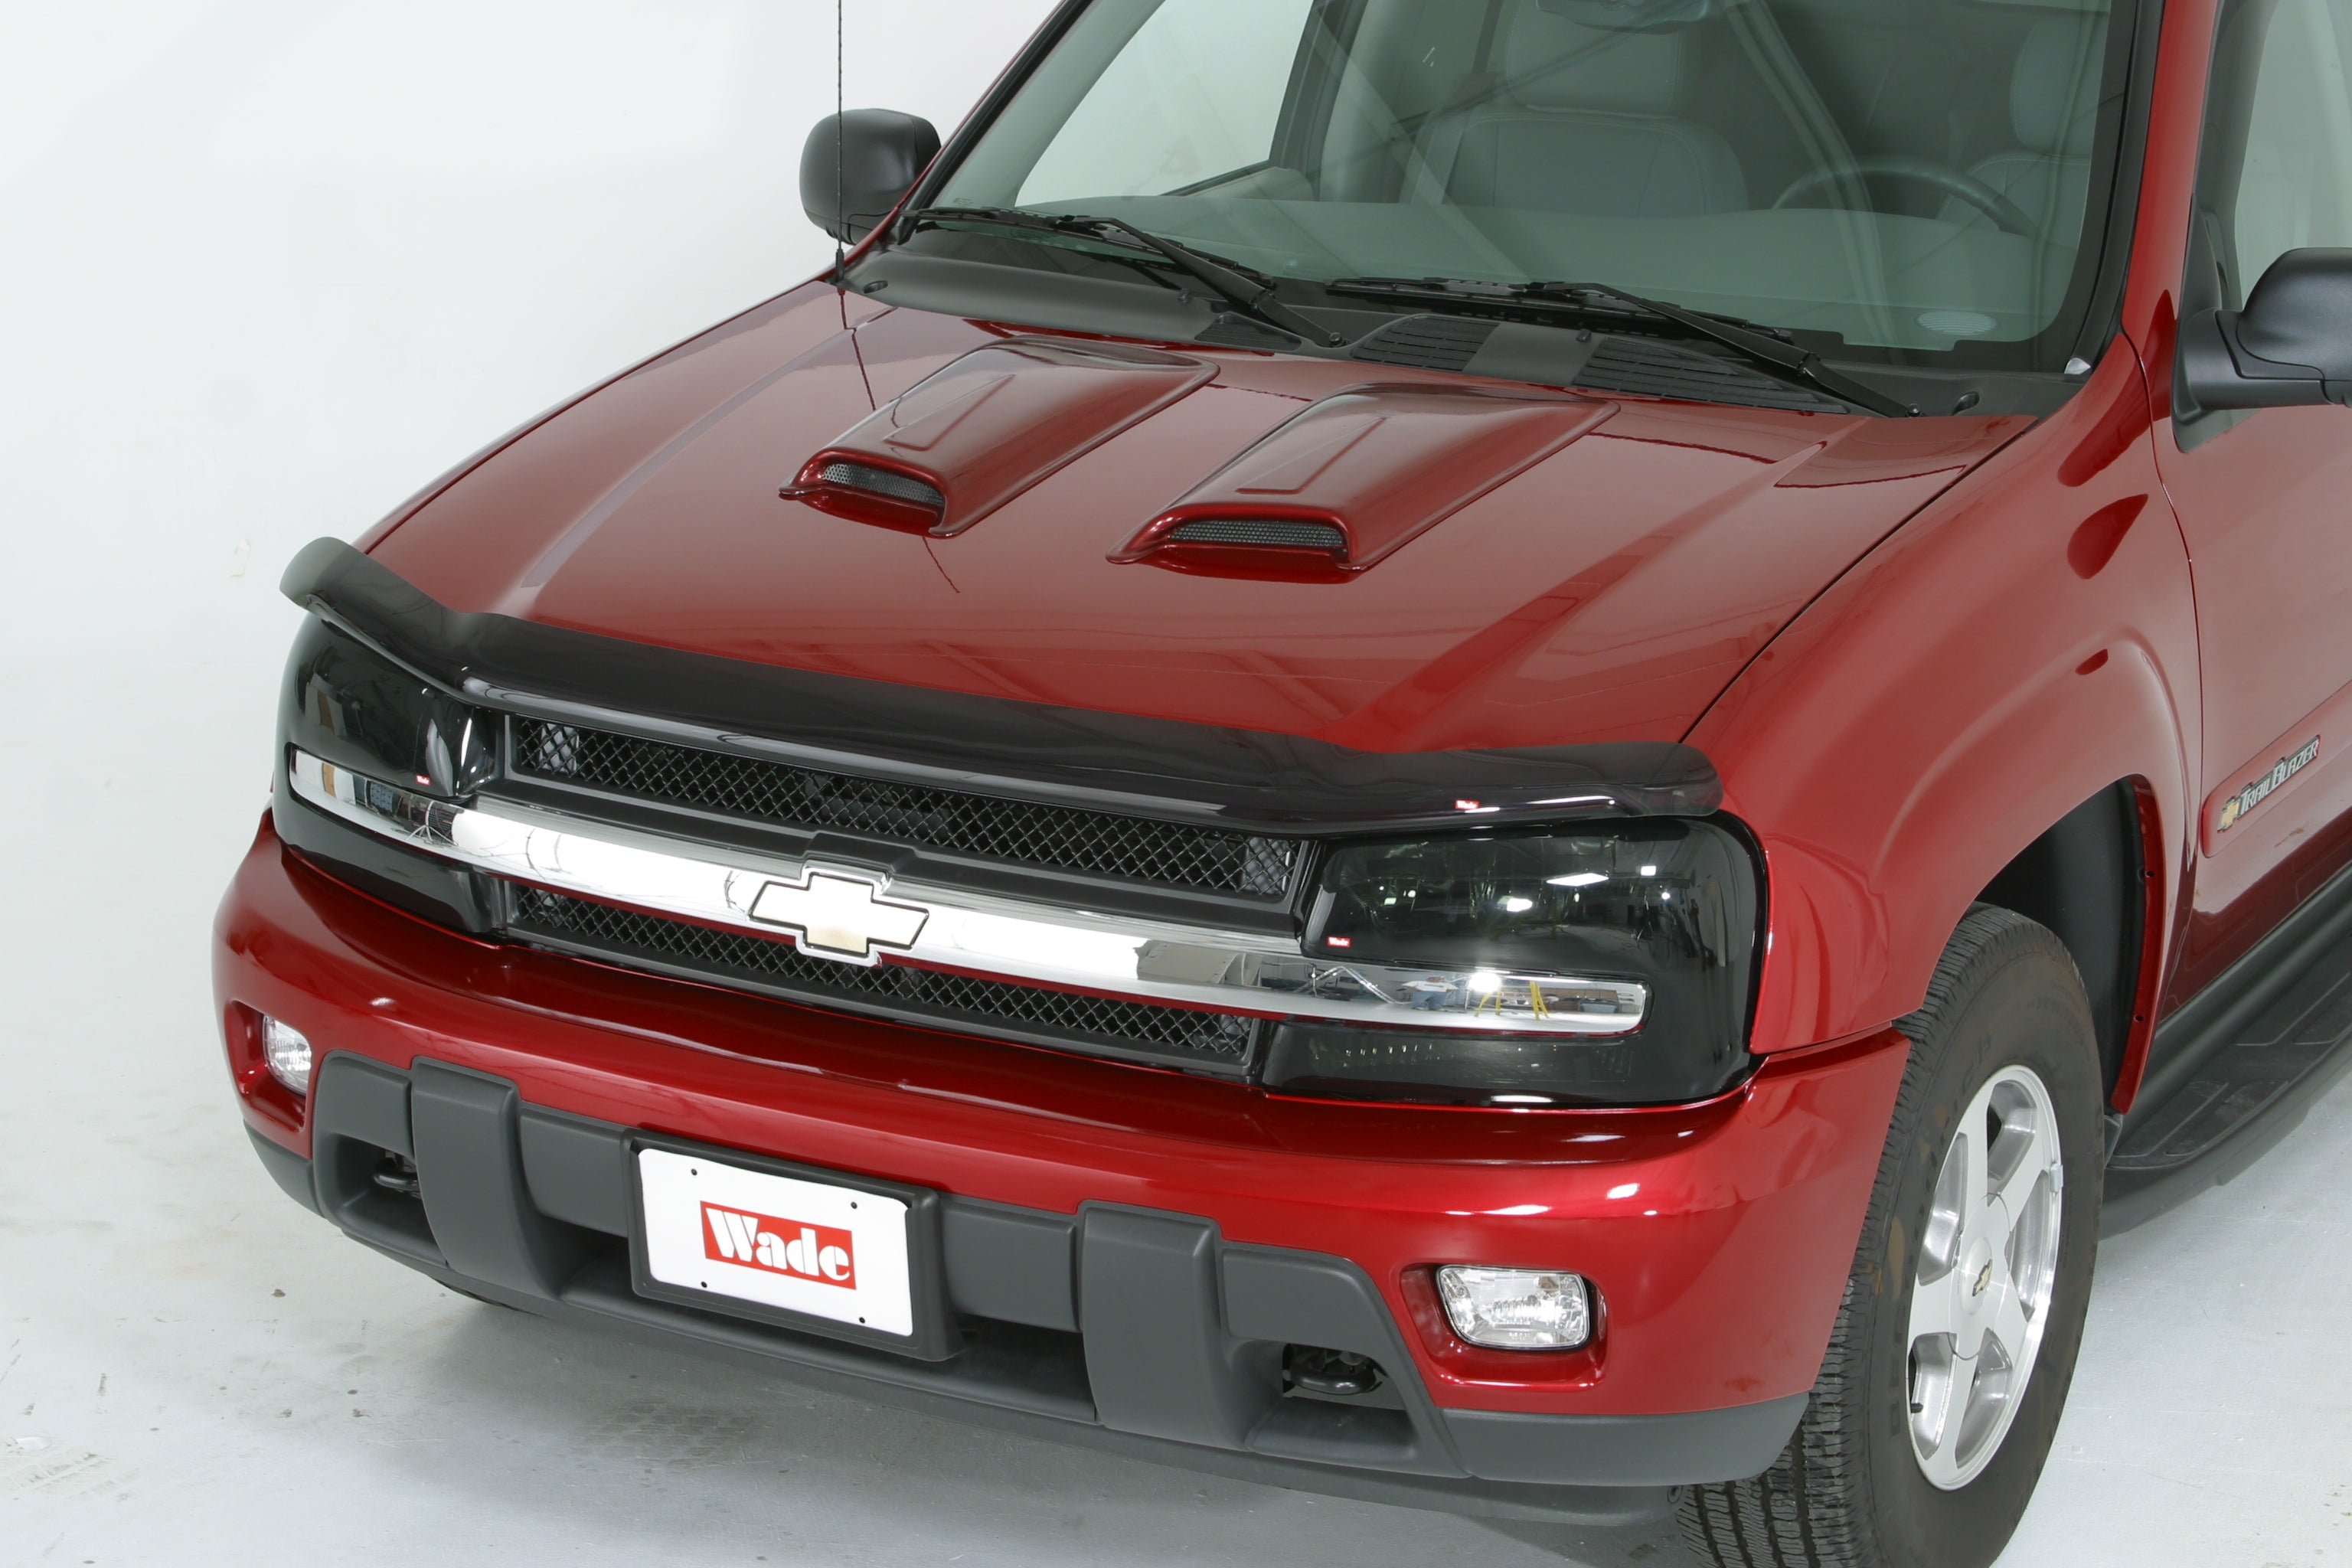 1988 Nissan Pickup 2WD (recessed light) Head Light Covers